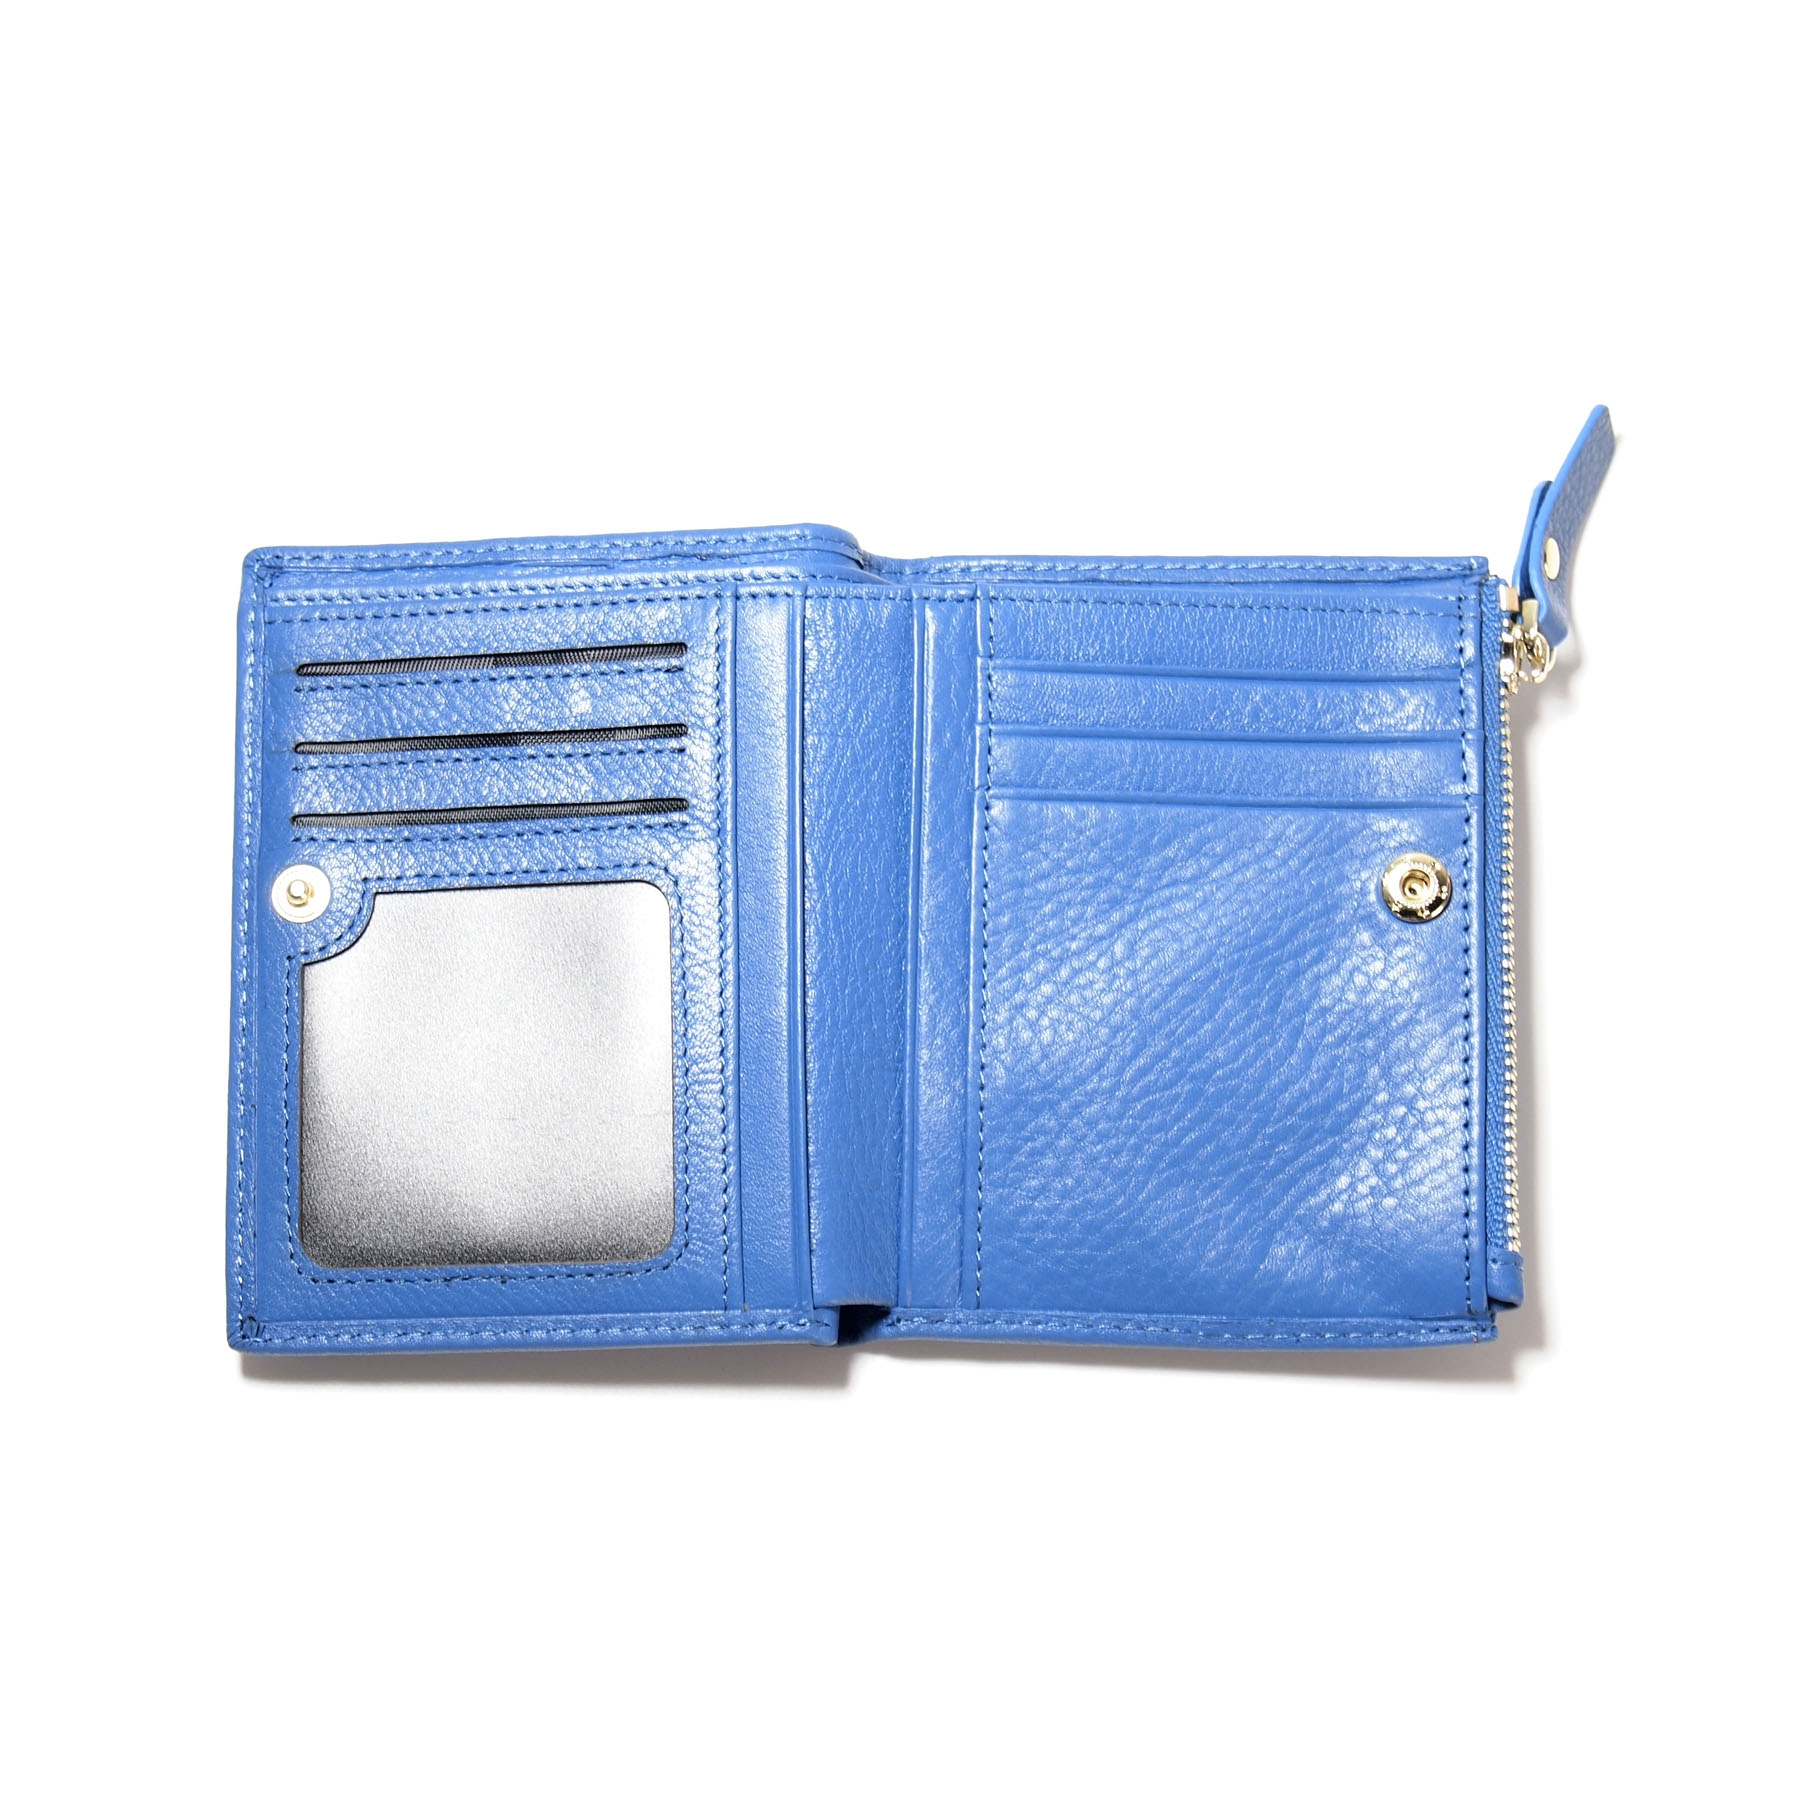 Butterfield Rumi Wallet Interiorl View